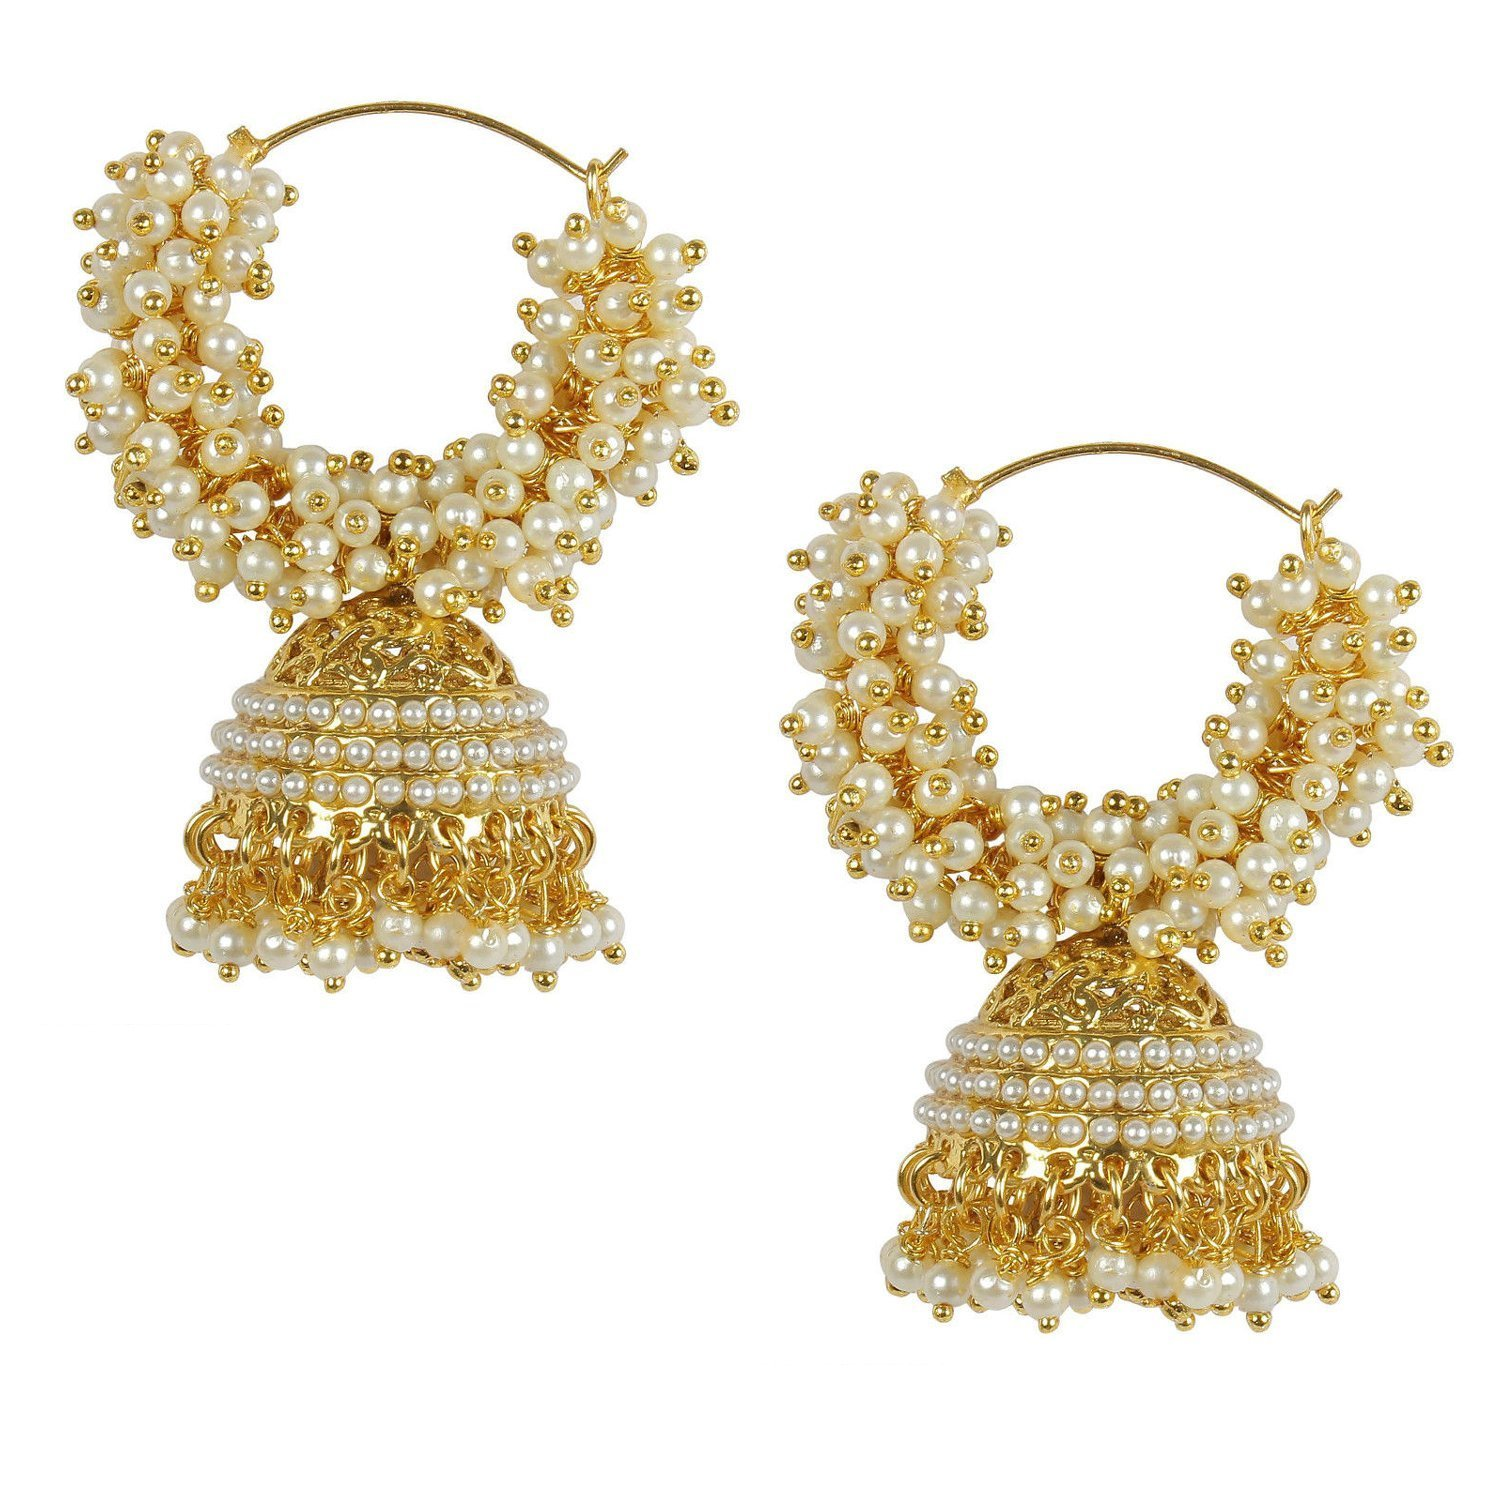 Pearl Stylish earrings for stylish girls